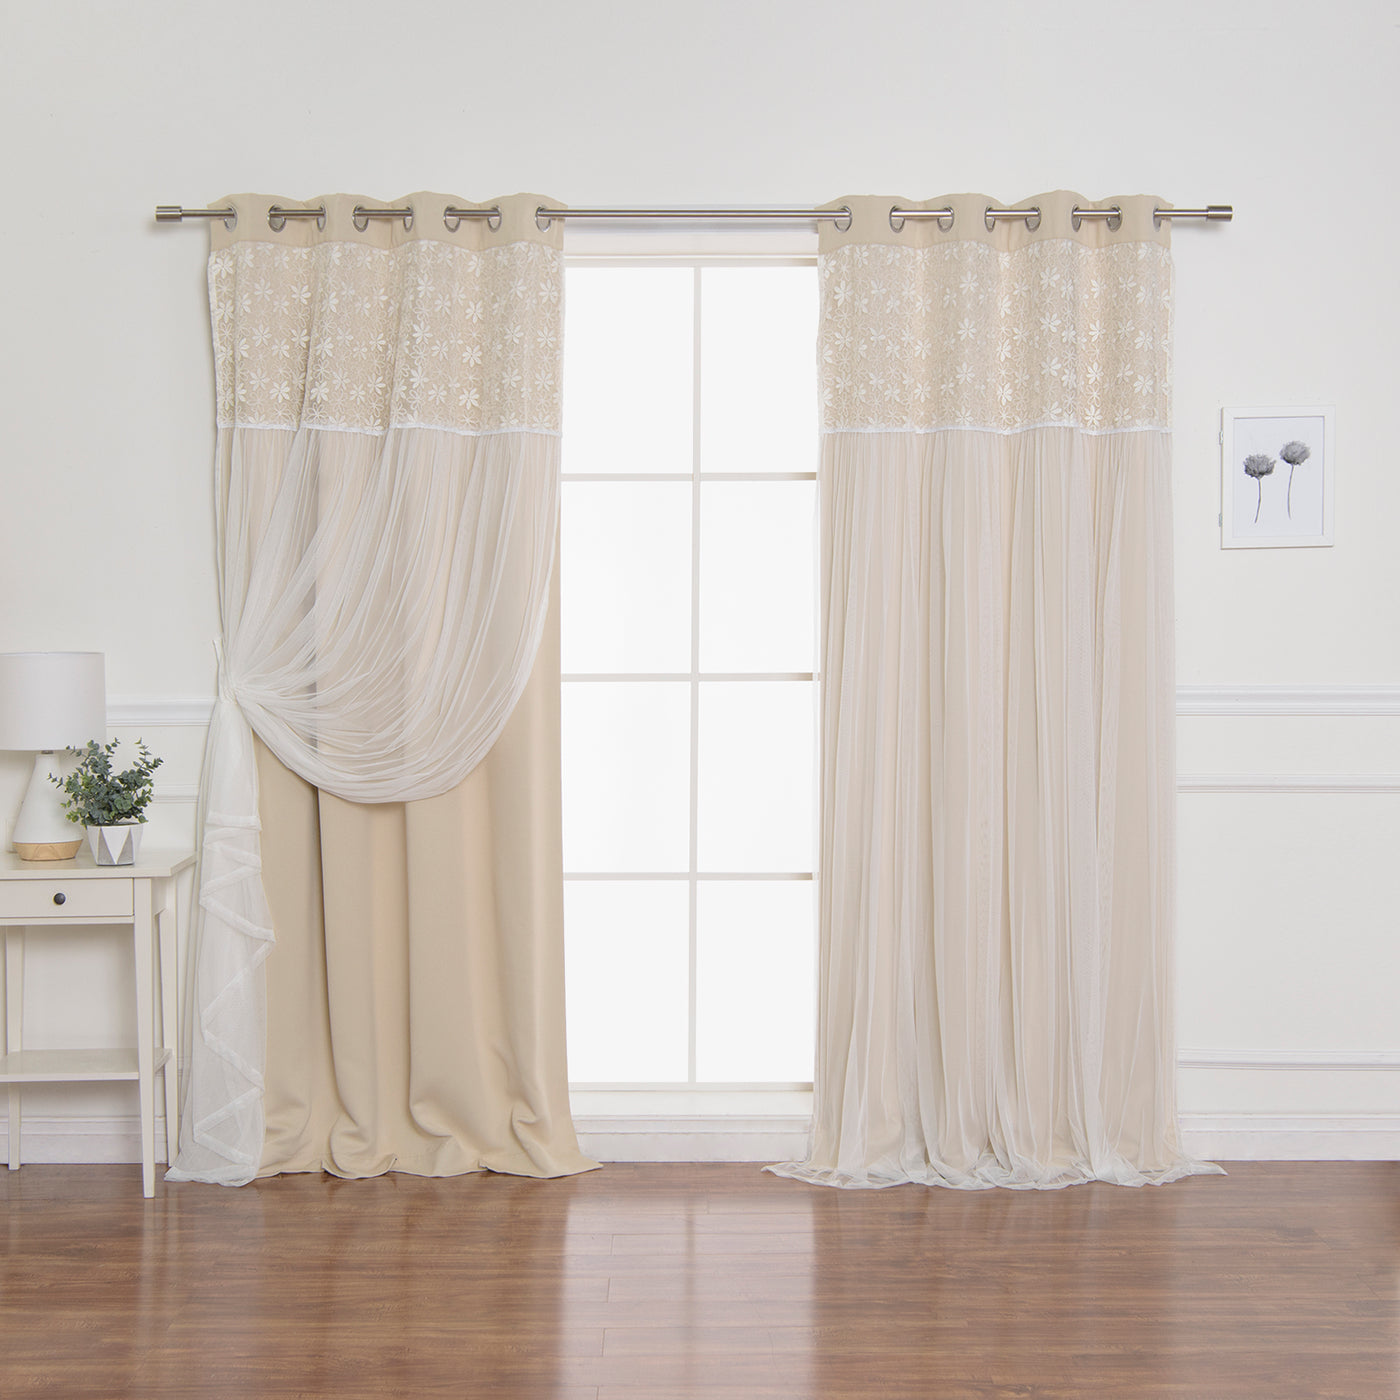 Floral Lace Overlay Blackout Curtains